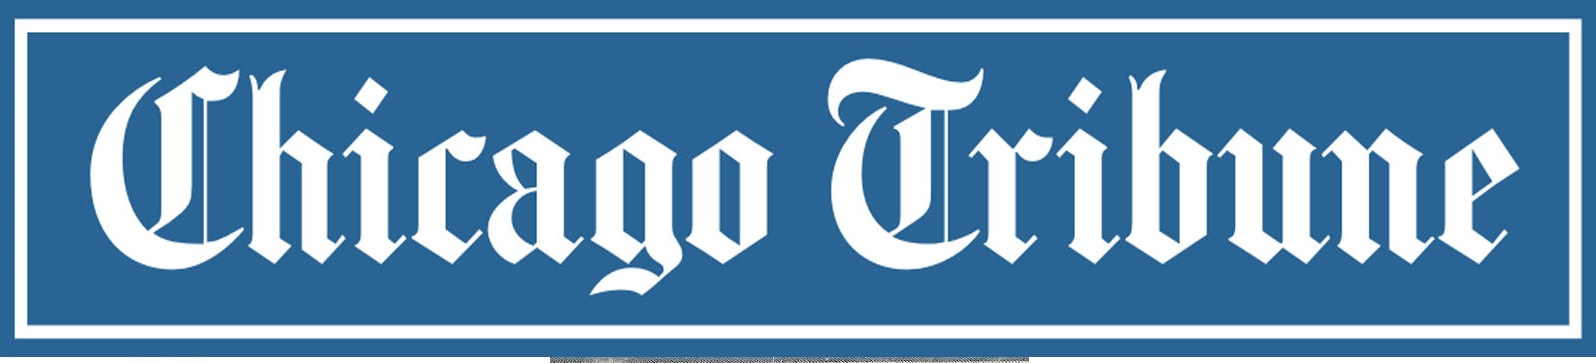 Chicago-Tribune-logo